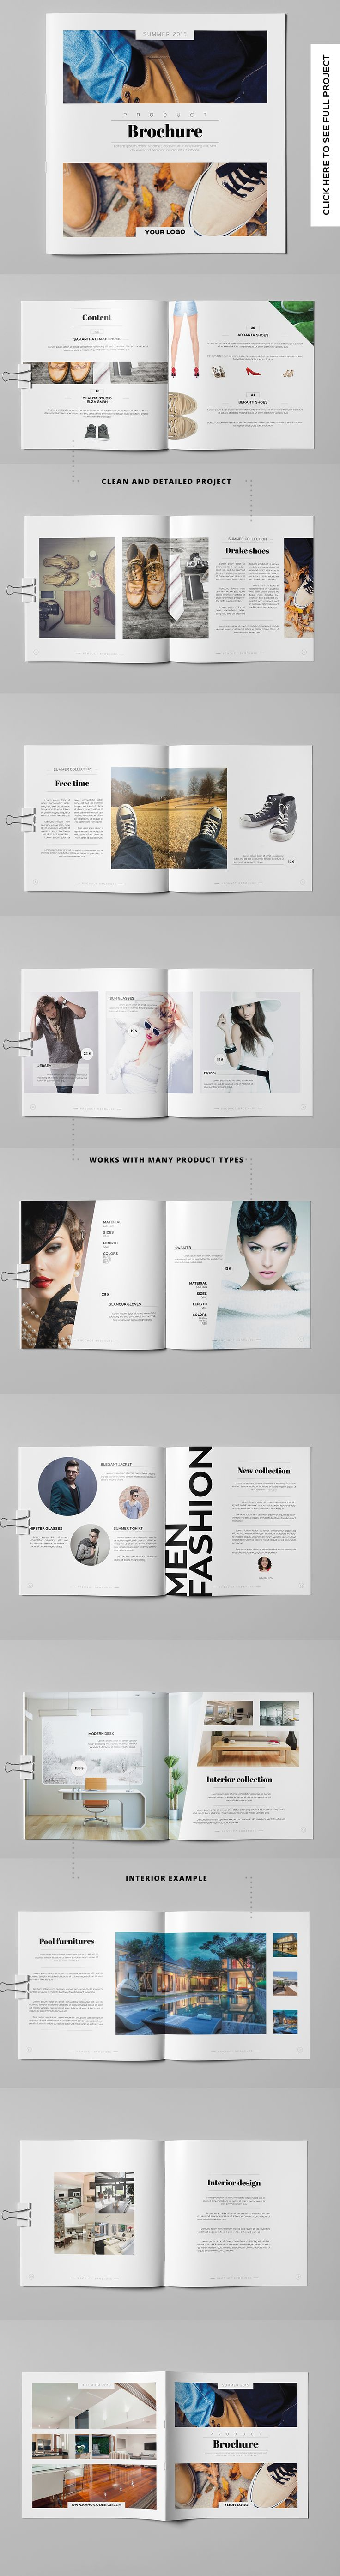 Product Brochure / Catalog by Kahuna Design on @creativemarket